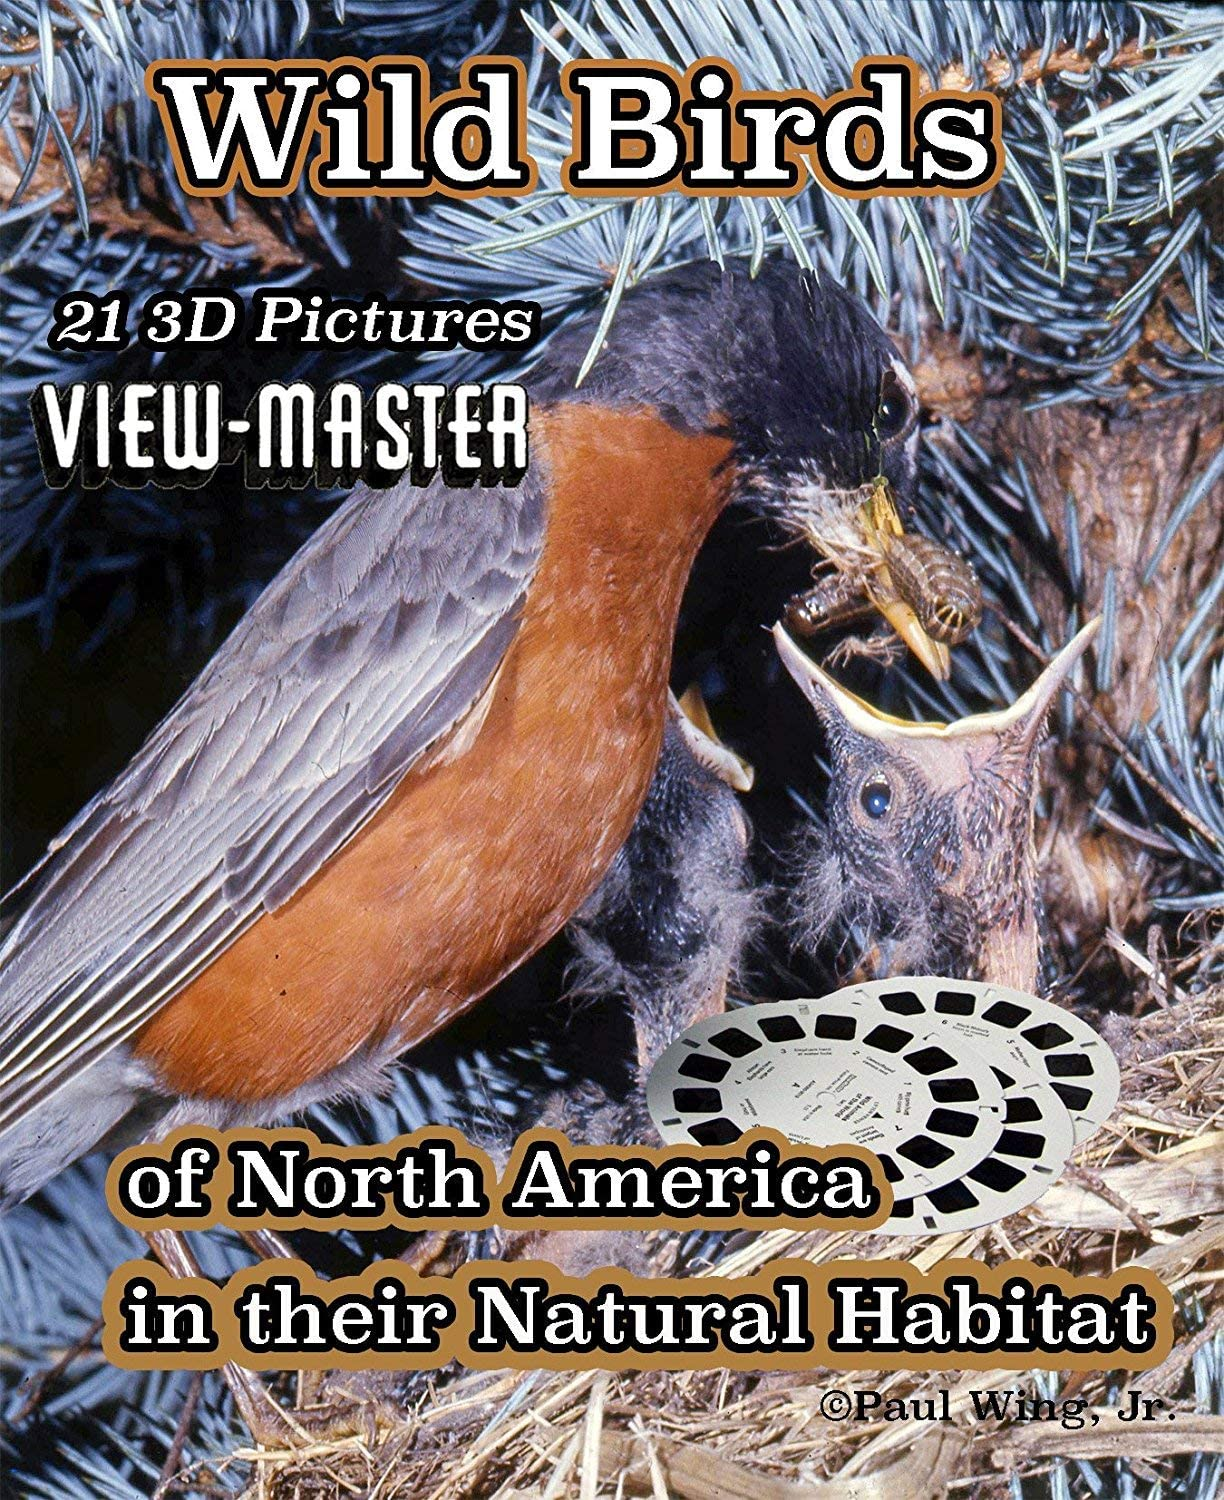 Wild Birds of North America - Classic Viewmaster 3 Reels 21 3D Images